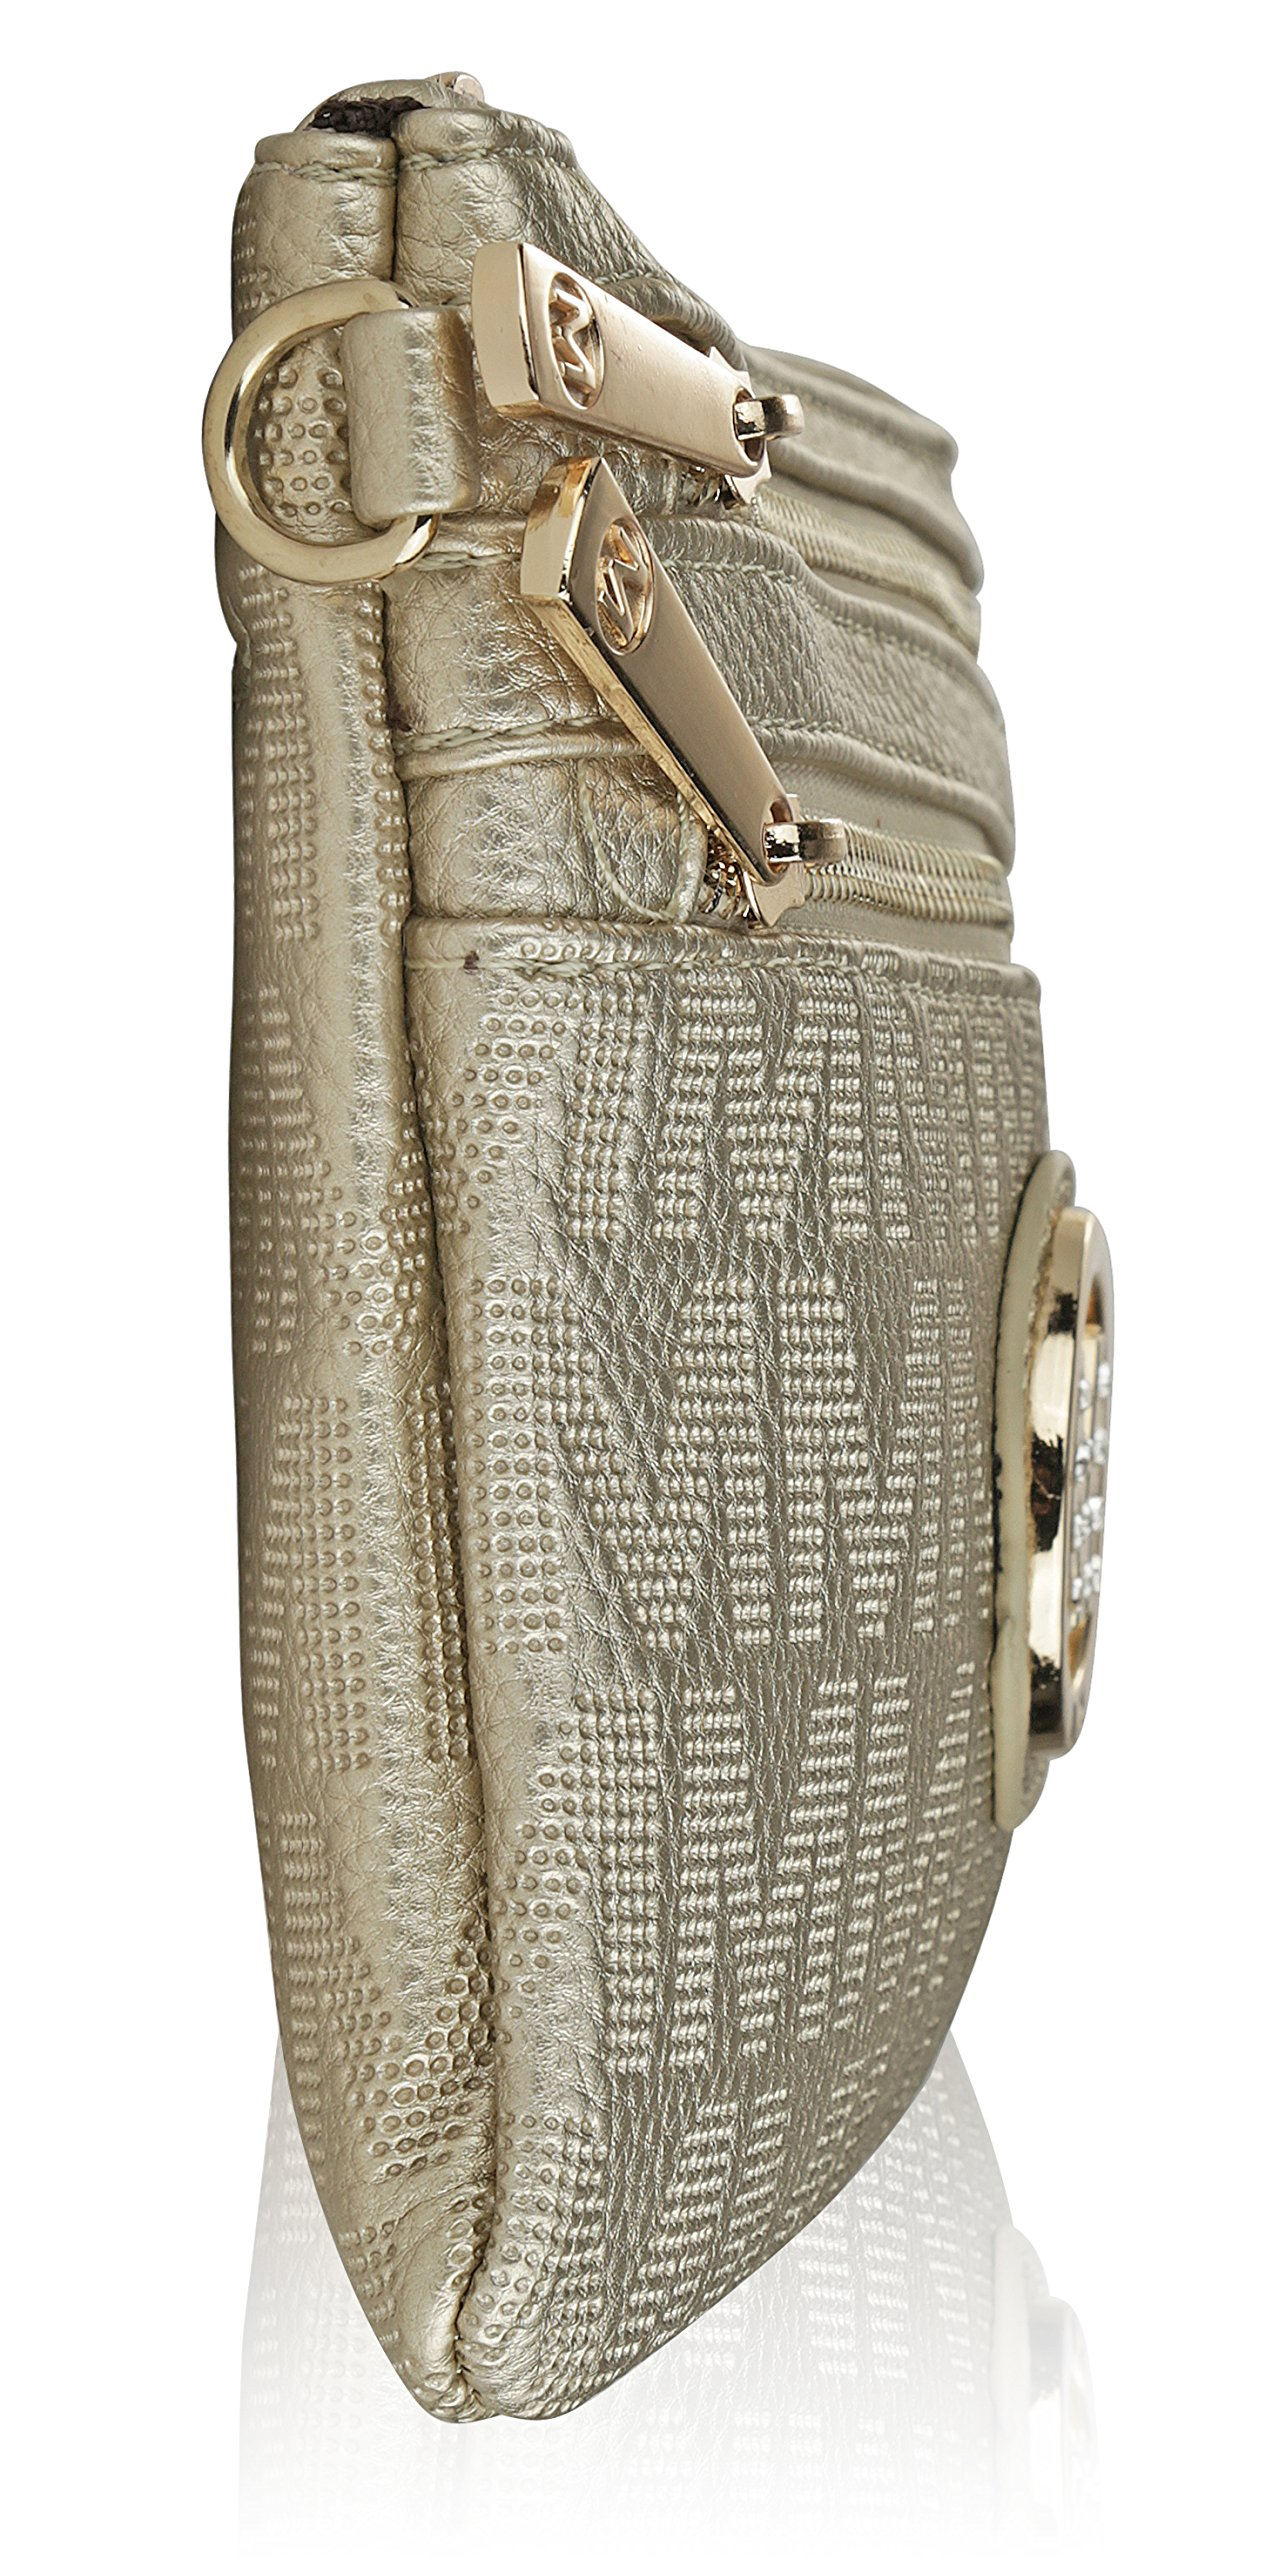 Wristlet | 2-in-1 Crossbody Bags for Women | MKF Collection Roonie Milan Signature Design by MKF Collection (Image #7)